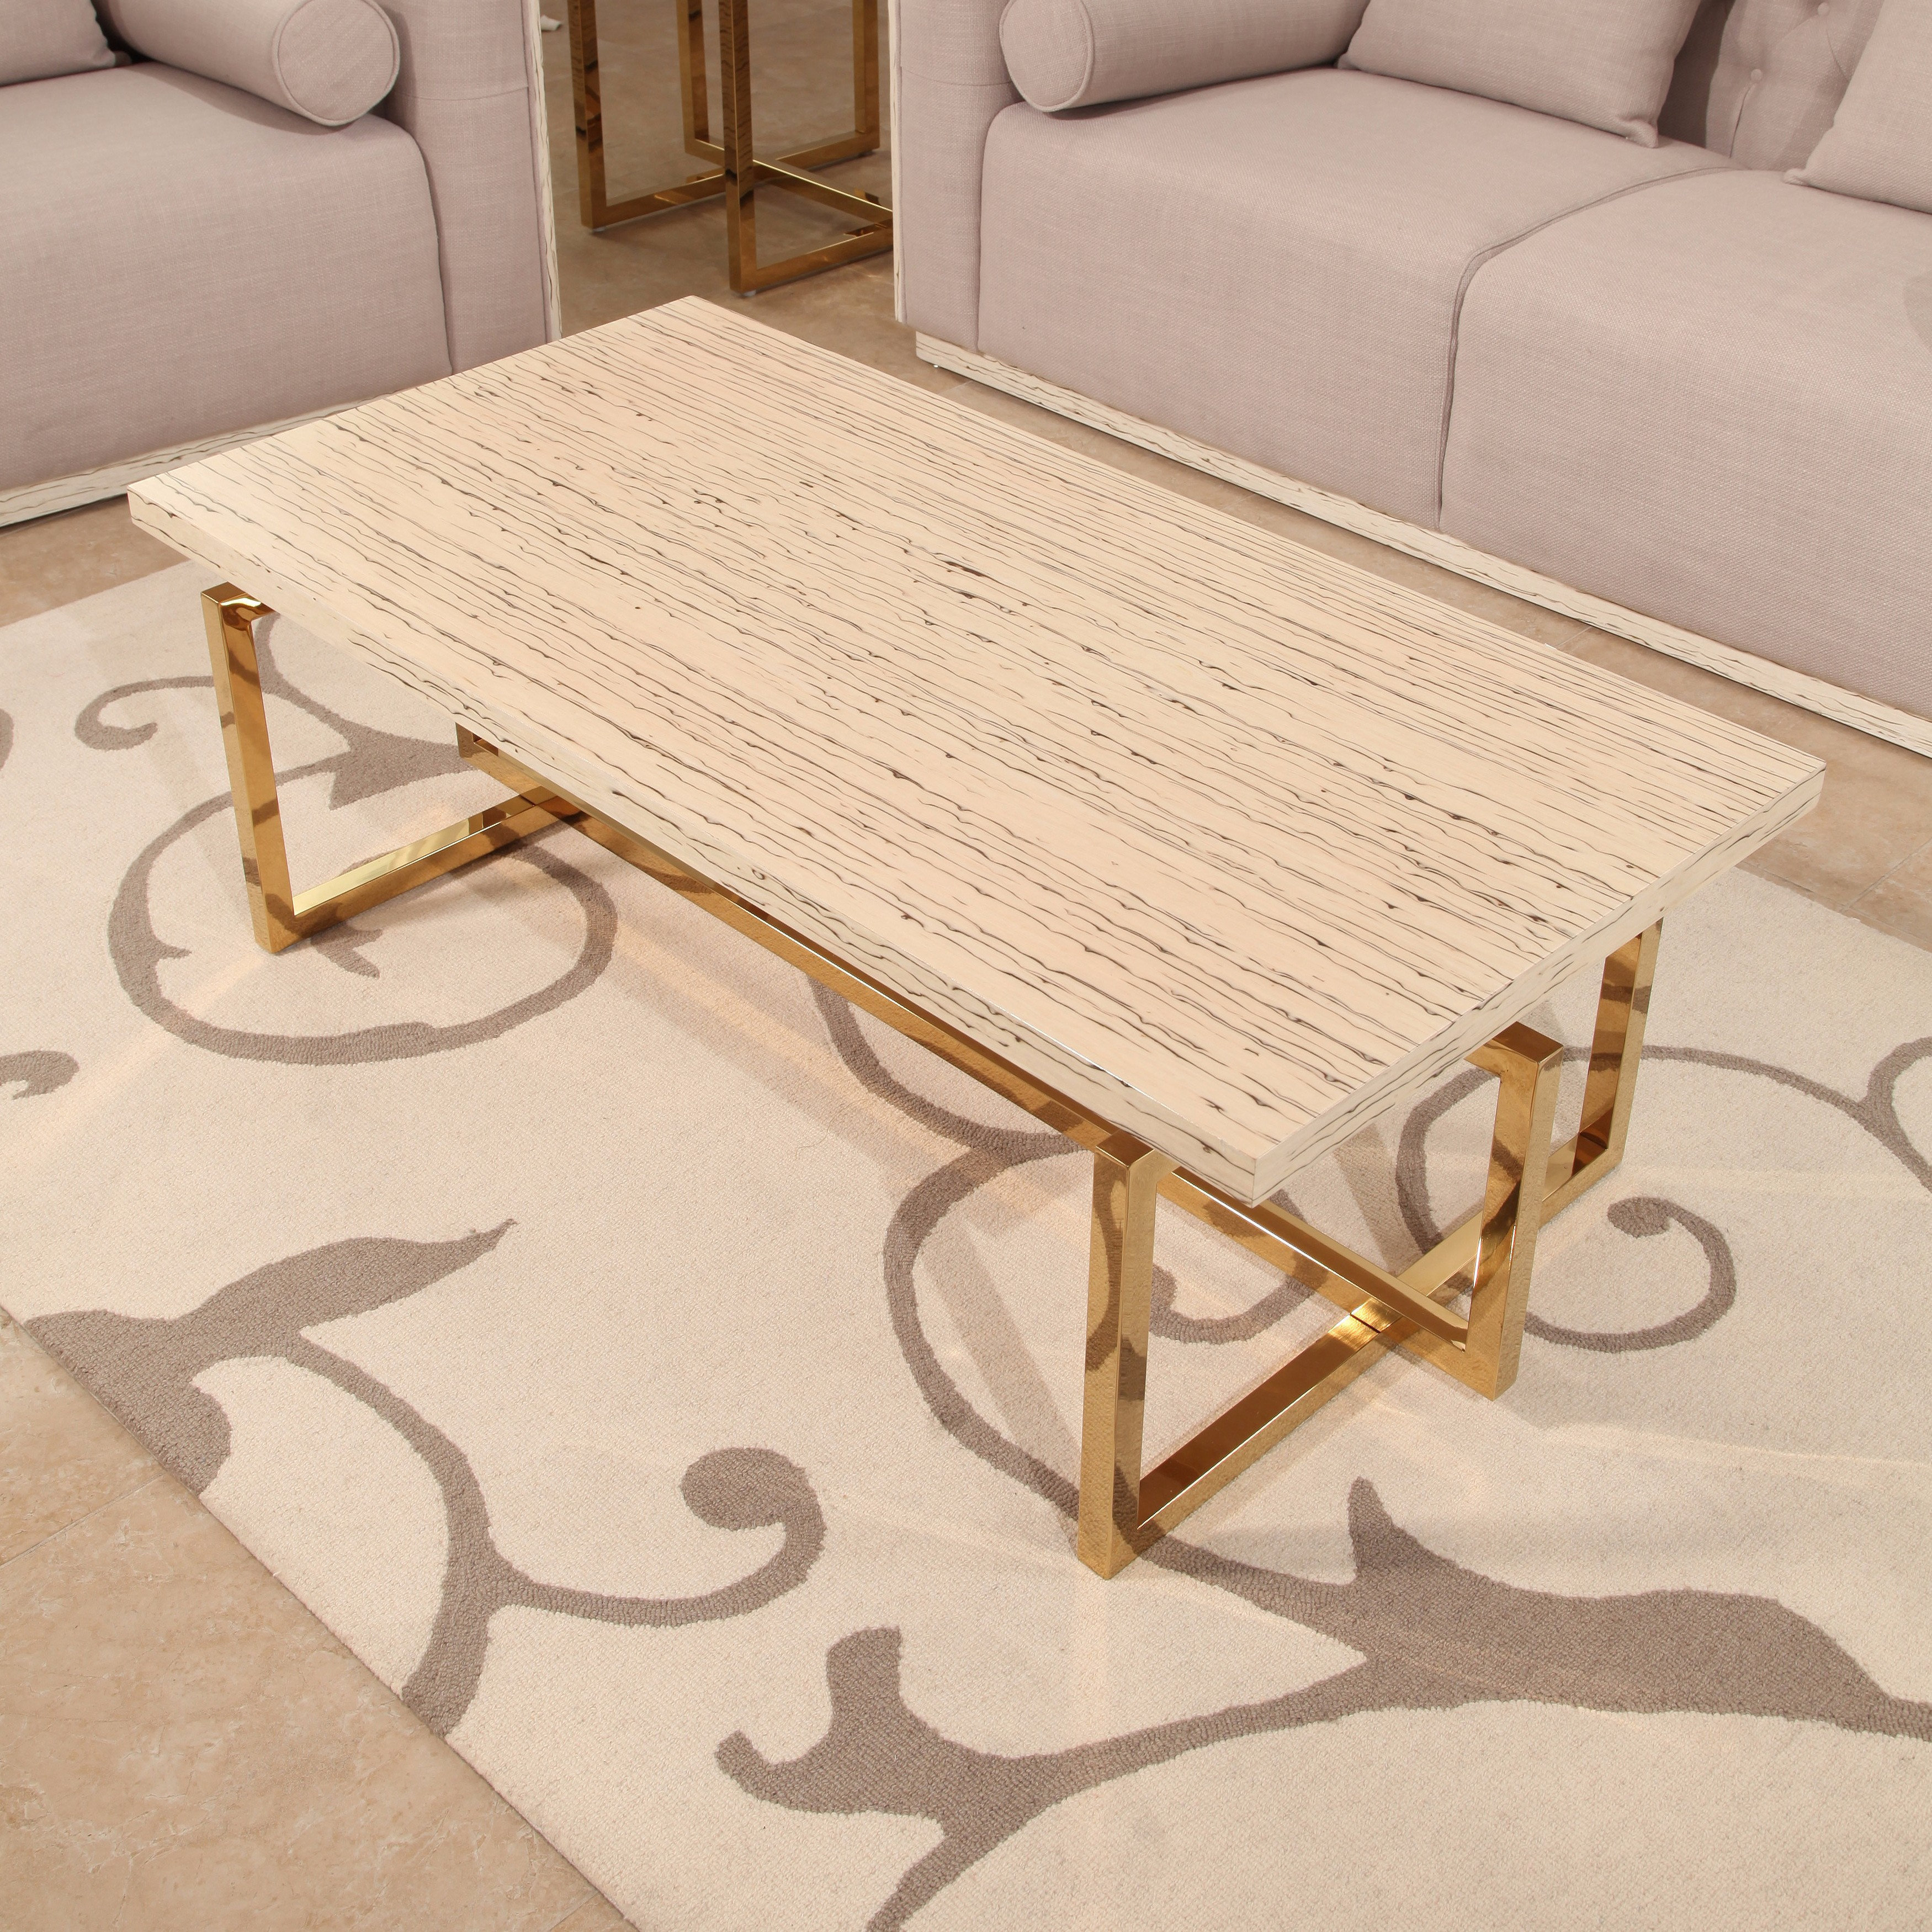 Shop Abbyson Archer Brass Finish Stainless Steel Coffee Table